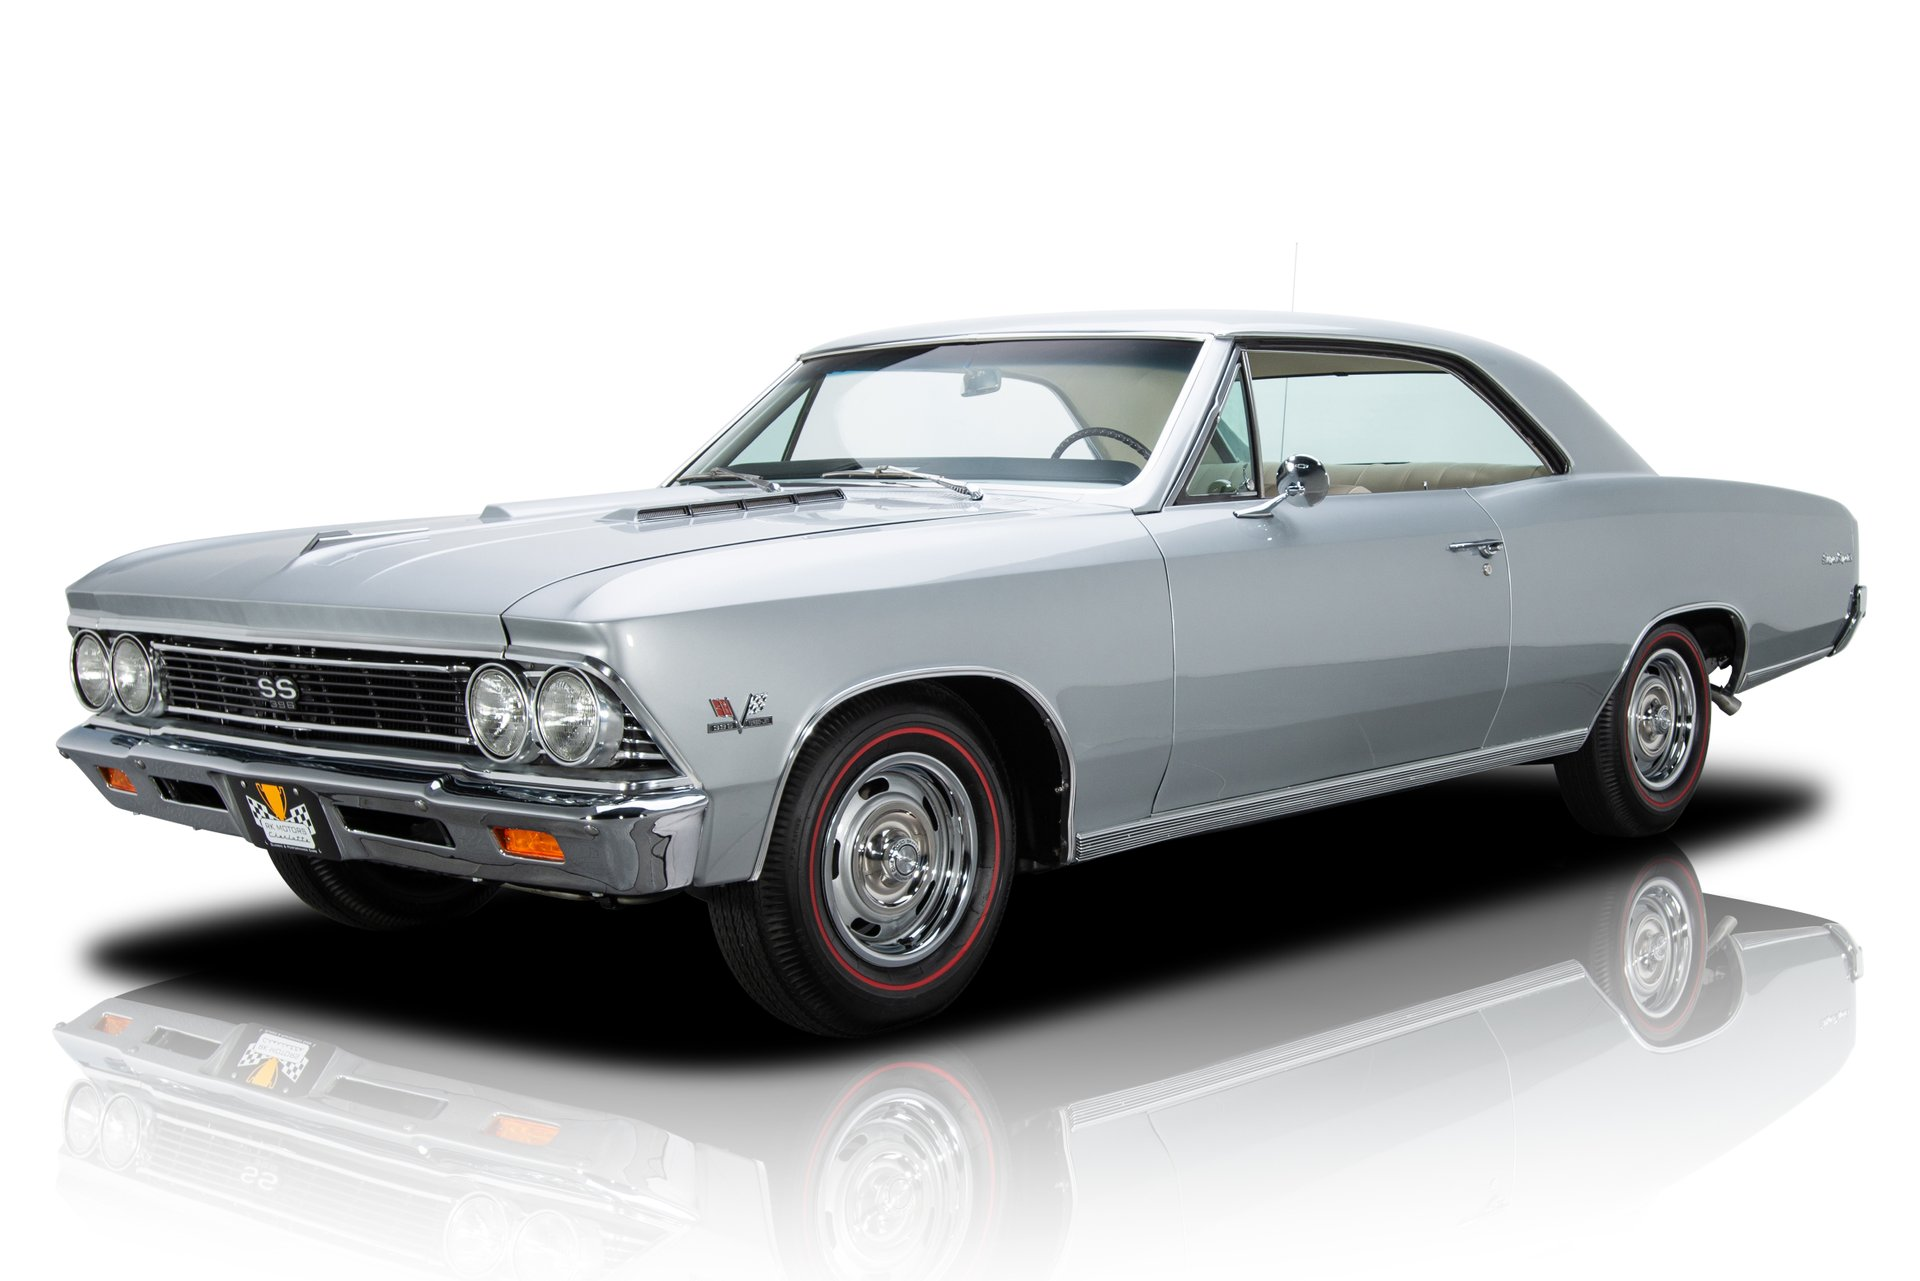 136255 1966 Chevrolet Chevelle RK Motors Classic Cars for Sale